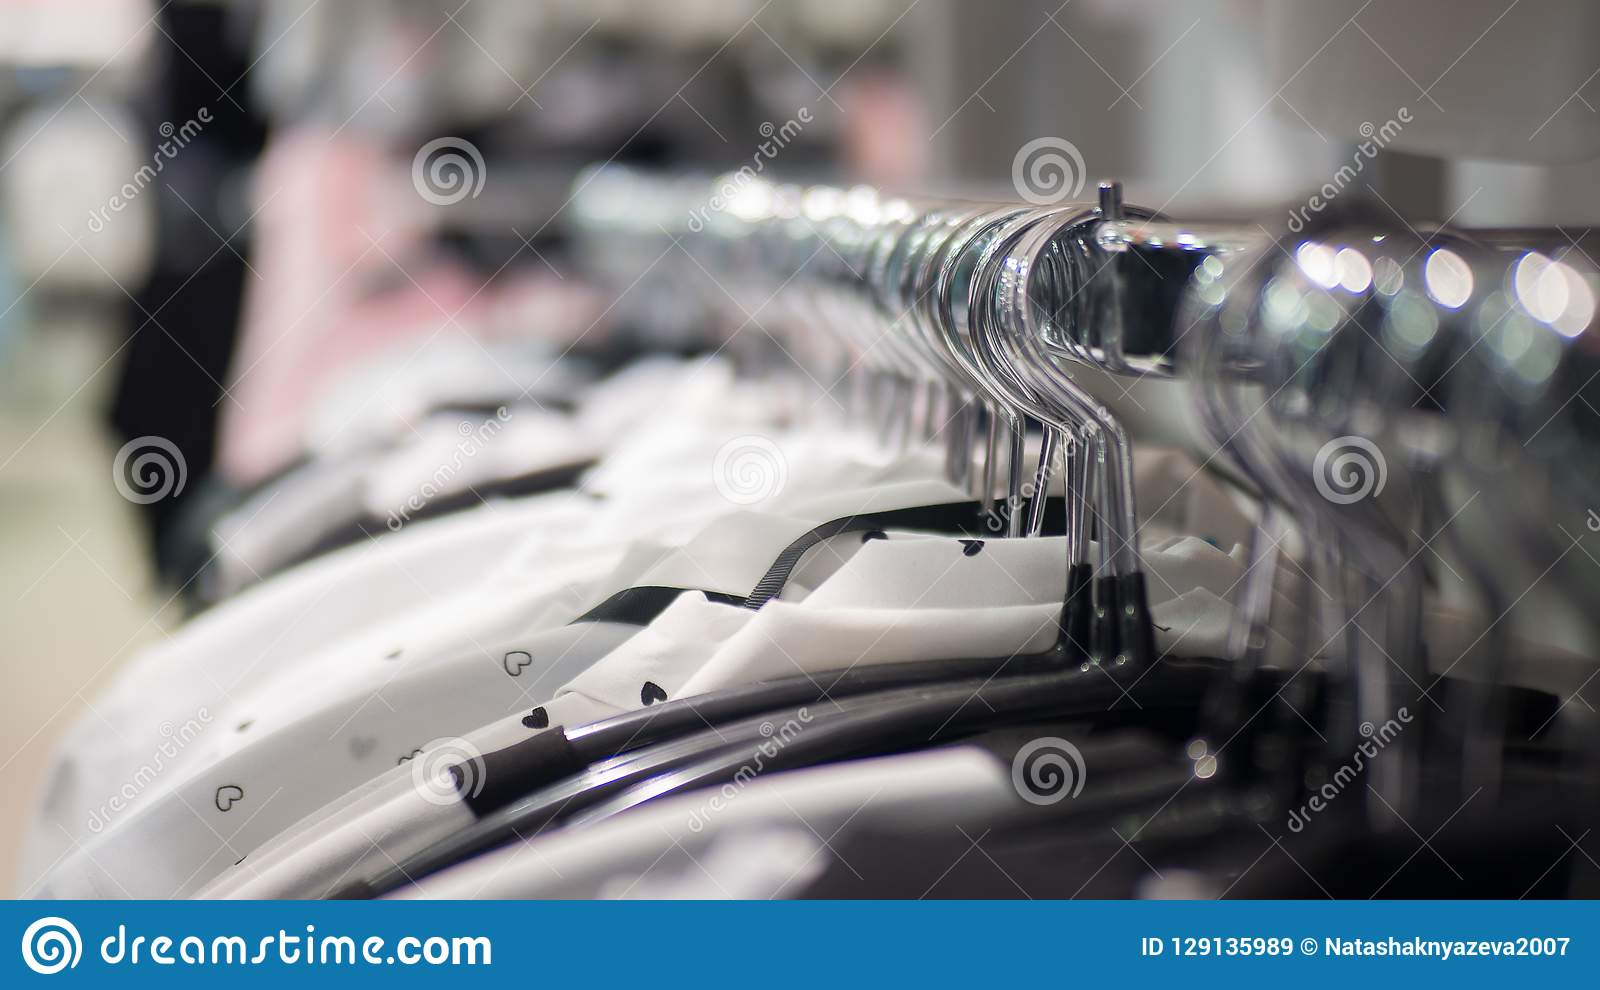 Rack With Hangers In A Clothes Store  Selected Focus  Stock Image